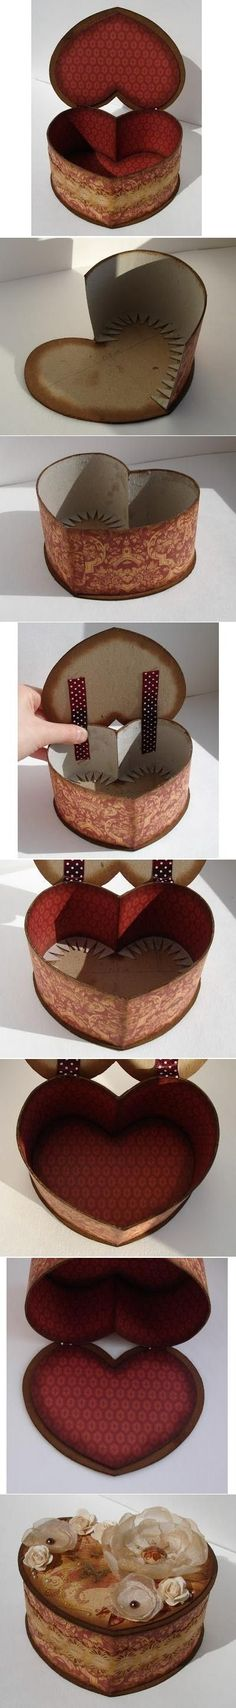 DIY Cardboard Heart Shaped Box